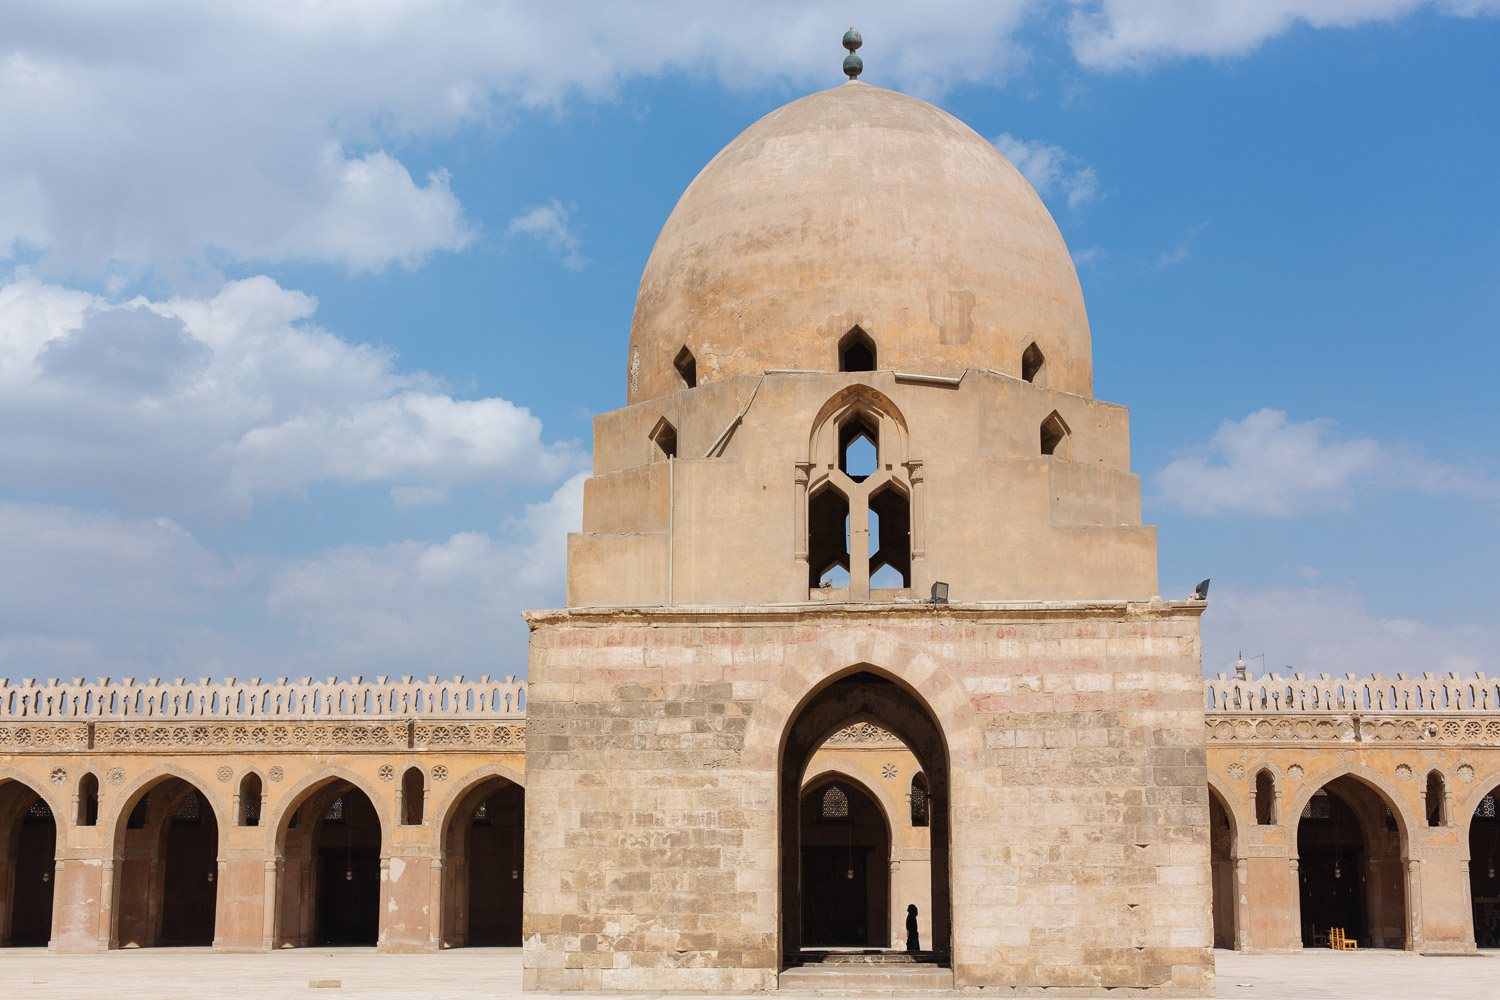 This is the Mosque of Ibn Tulun, the oldest mosque in the city.